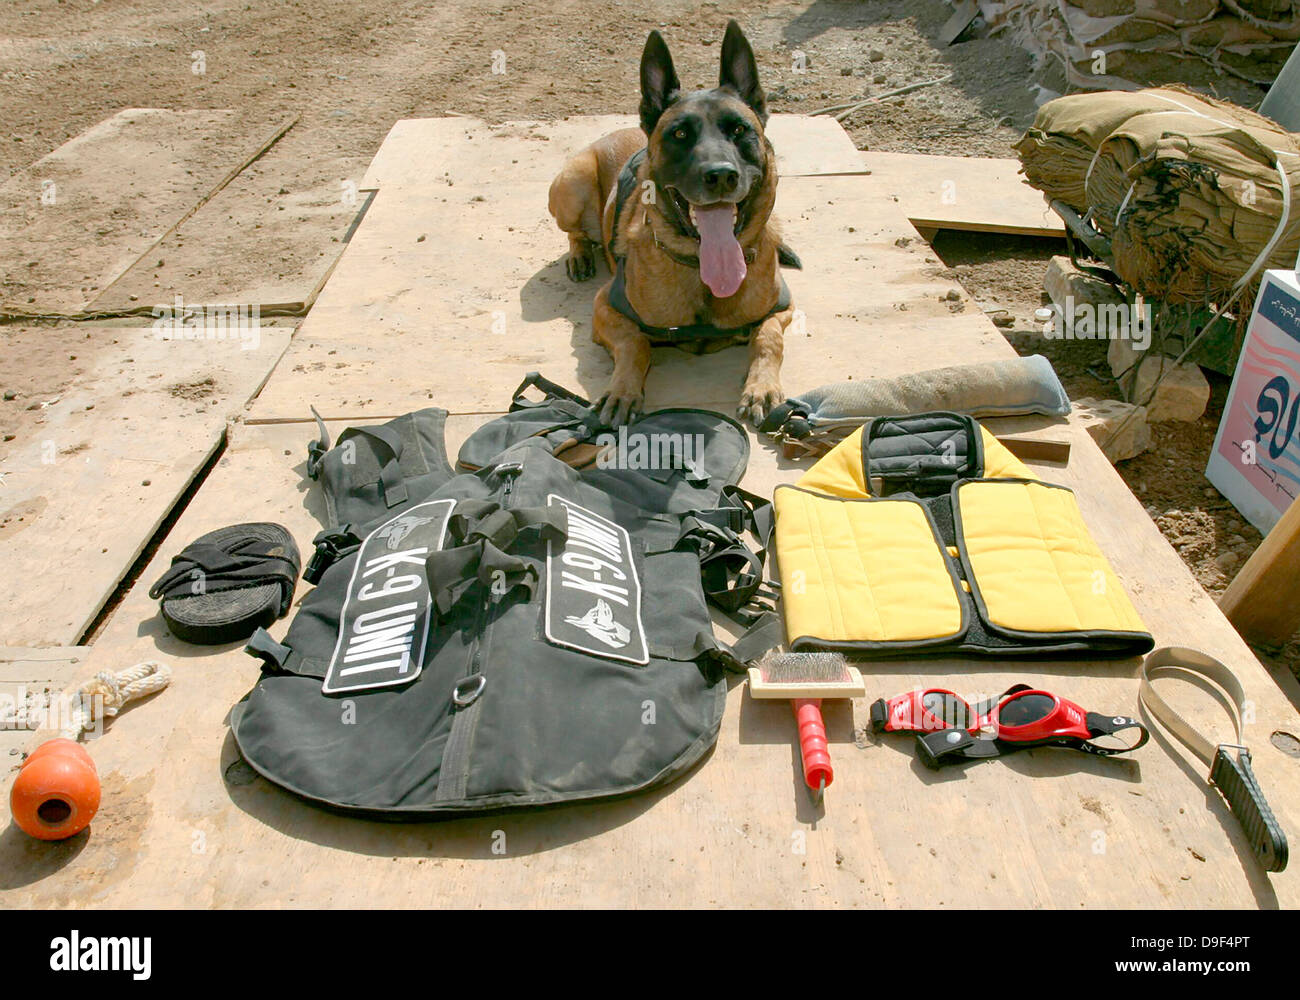 A military police dog sits beside his issued protective gear. - Stock Image